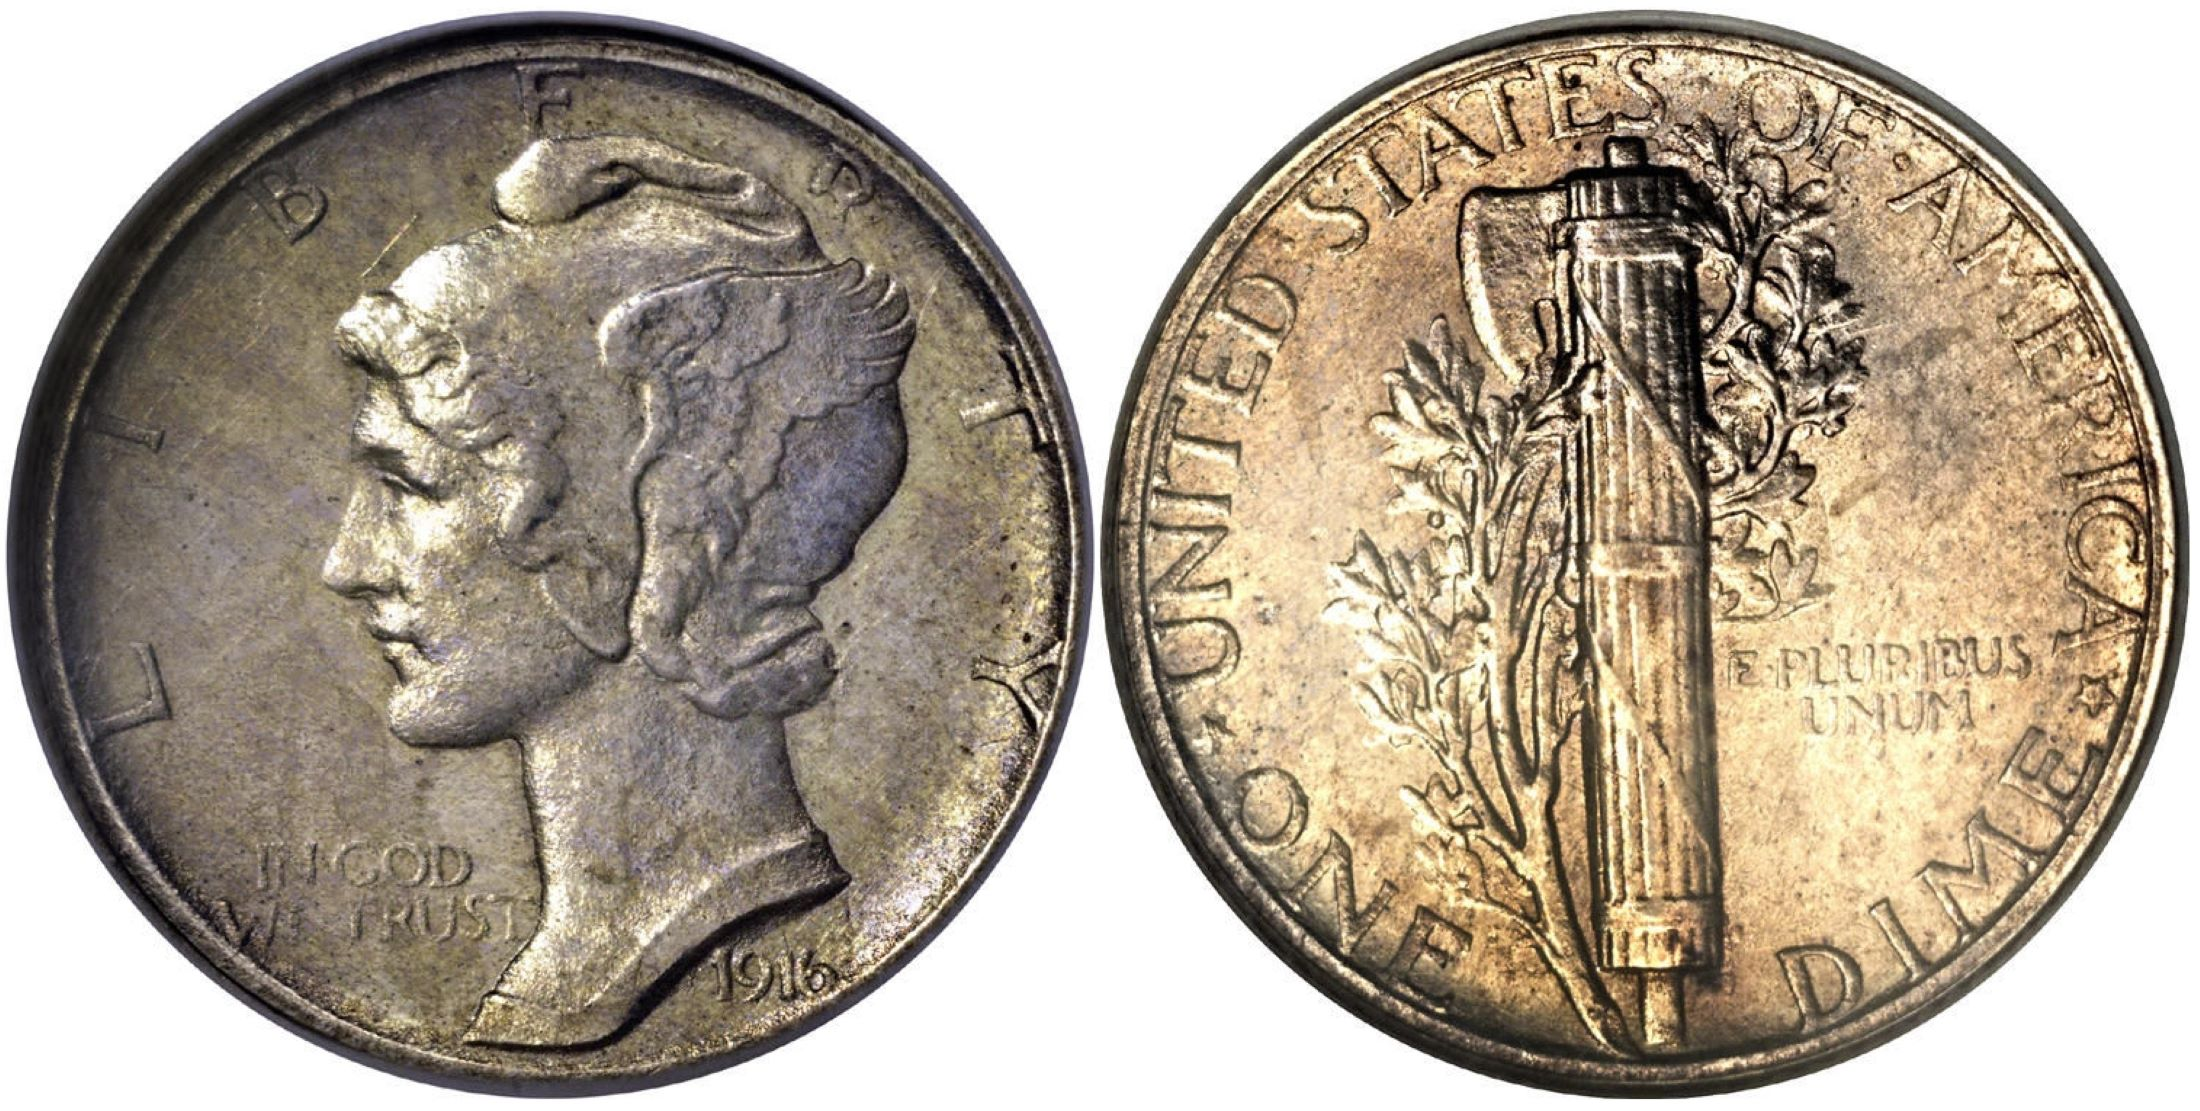 "PR60 estimated grade<BR>Image courtesy of <a href=""http://www.ha.com"" target=""_blank"">Heritage Numismatic Auctions</a>"